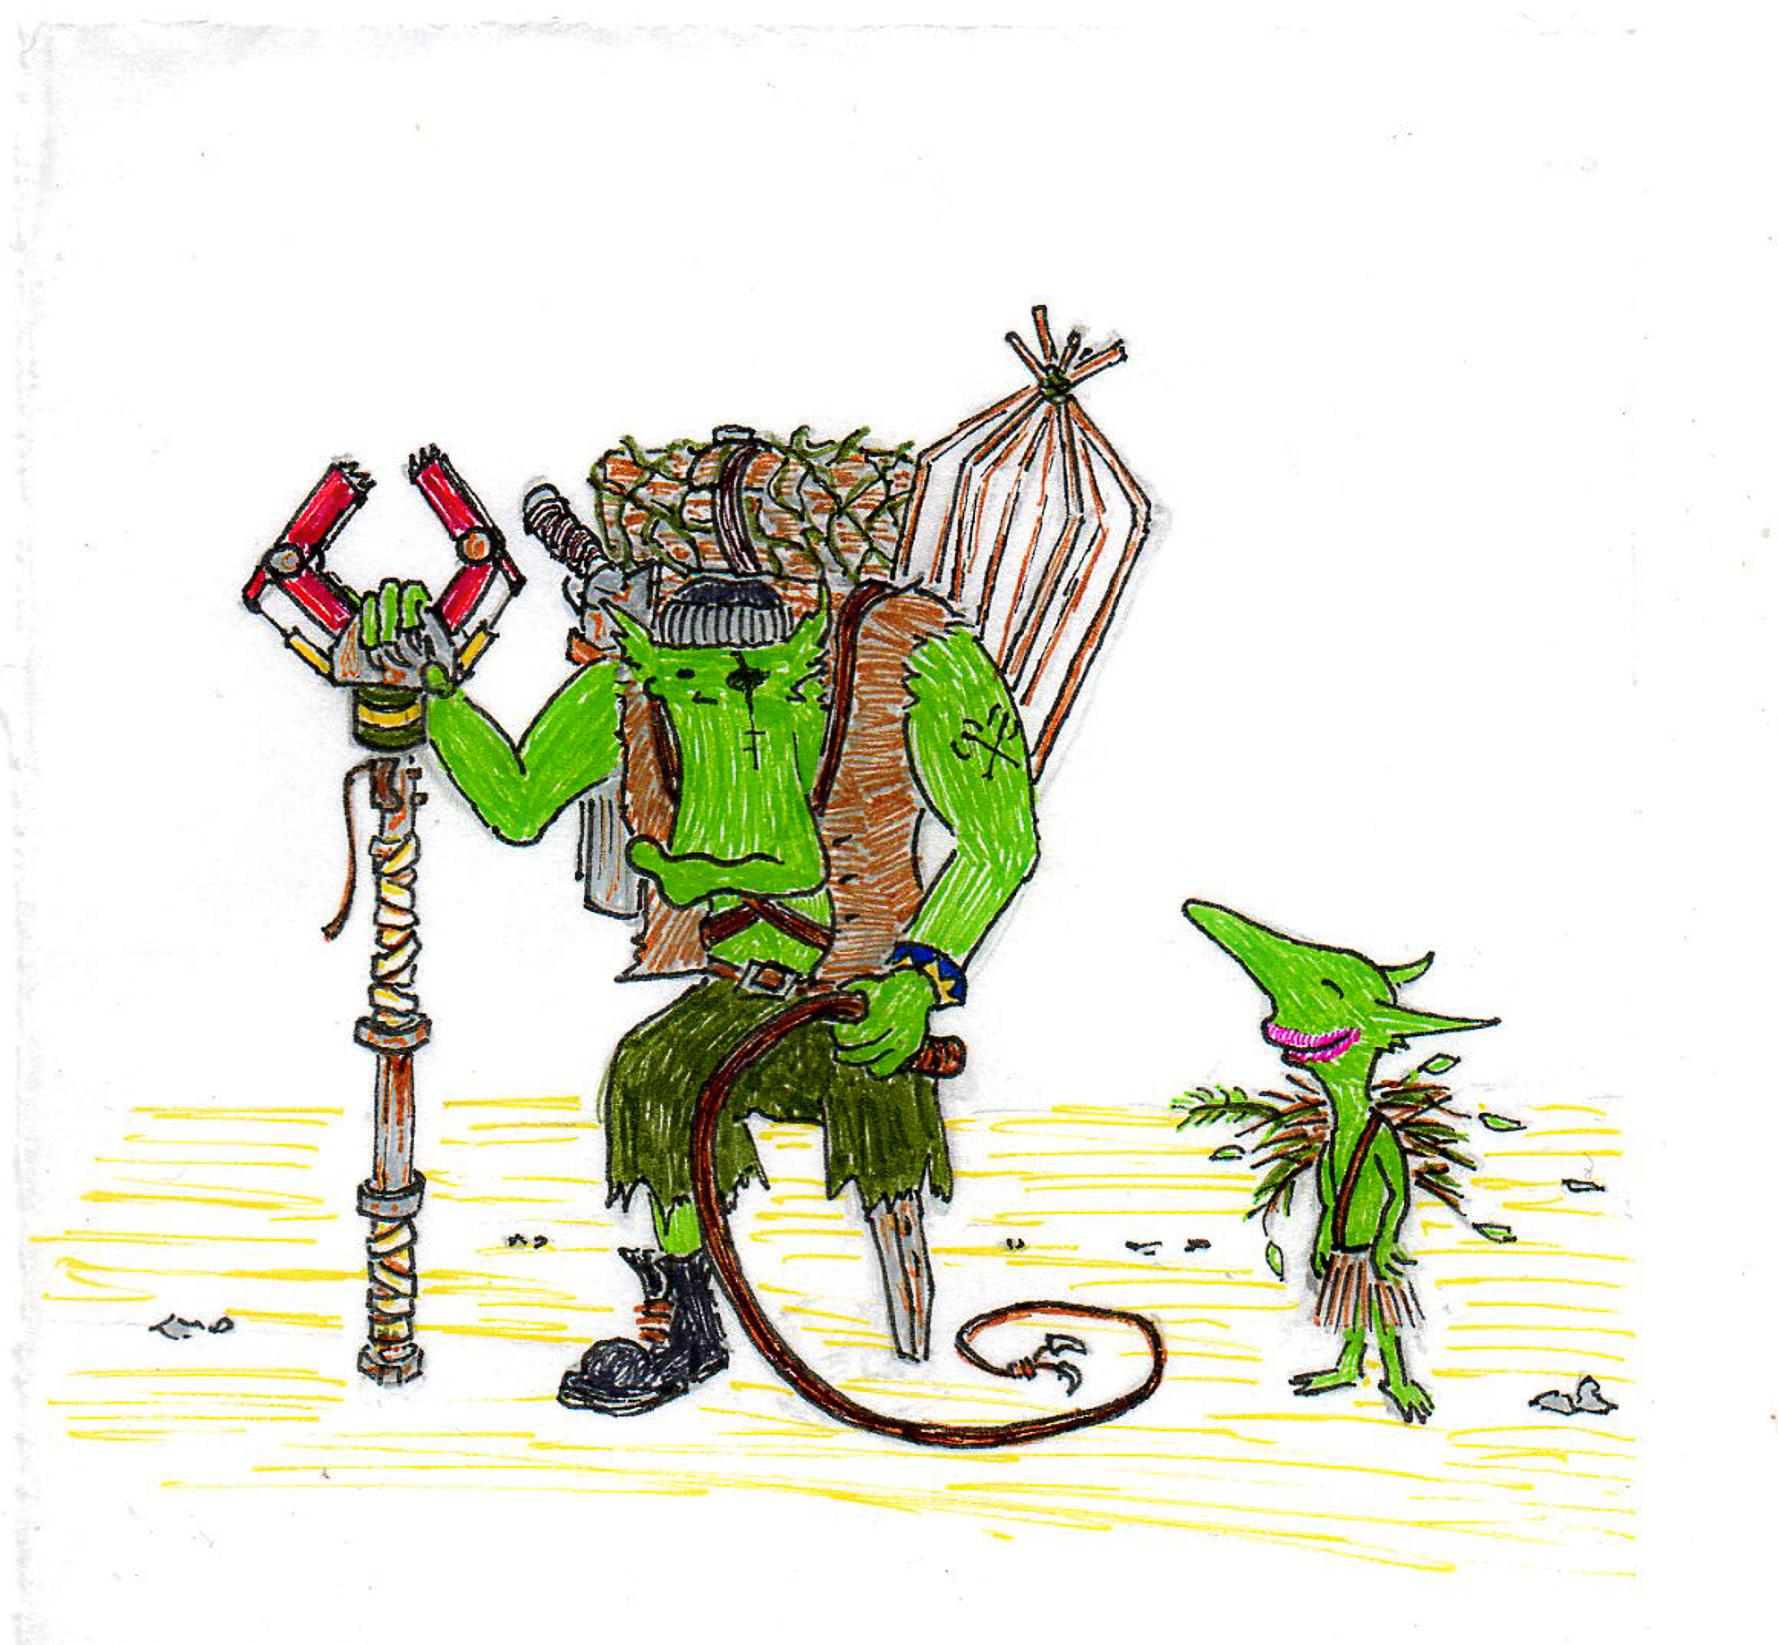 Artwork, Cartoon, Comedy, Comic, Drawing, Fiction, Grots, Humour, Illustration, Ink, Orks, Sketch, Warhammer 40,000